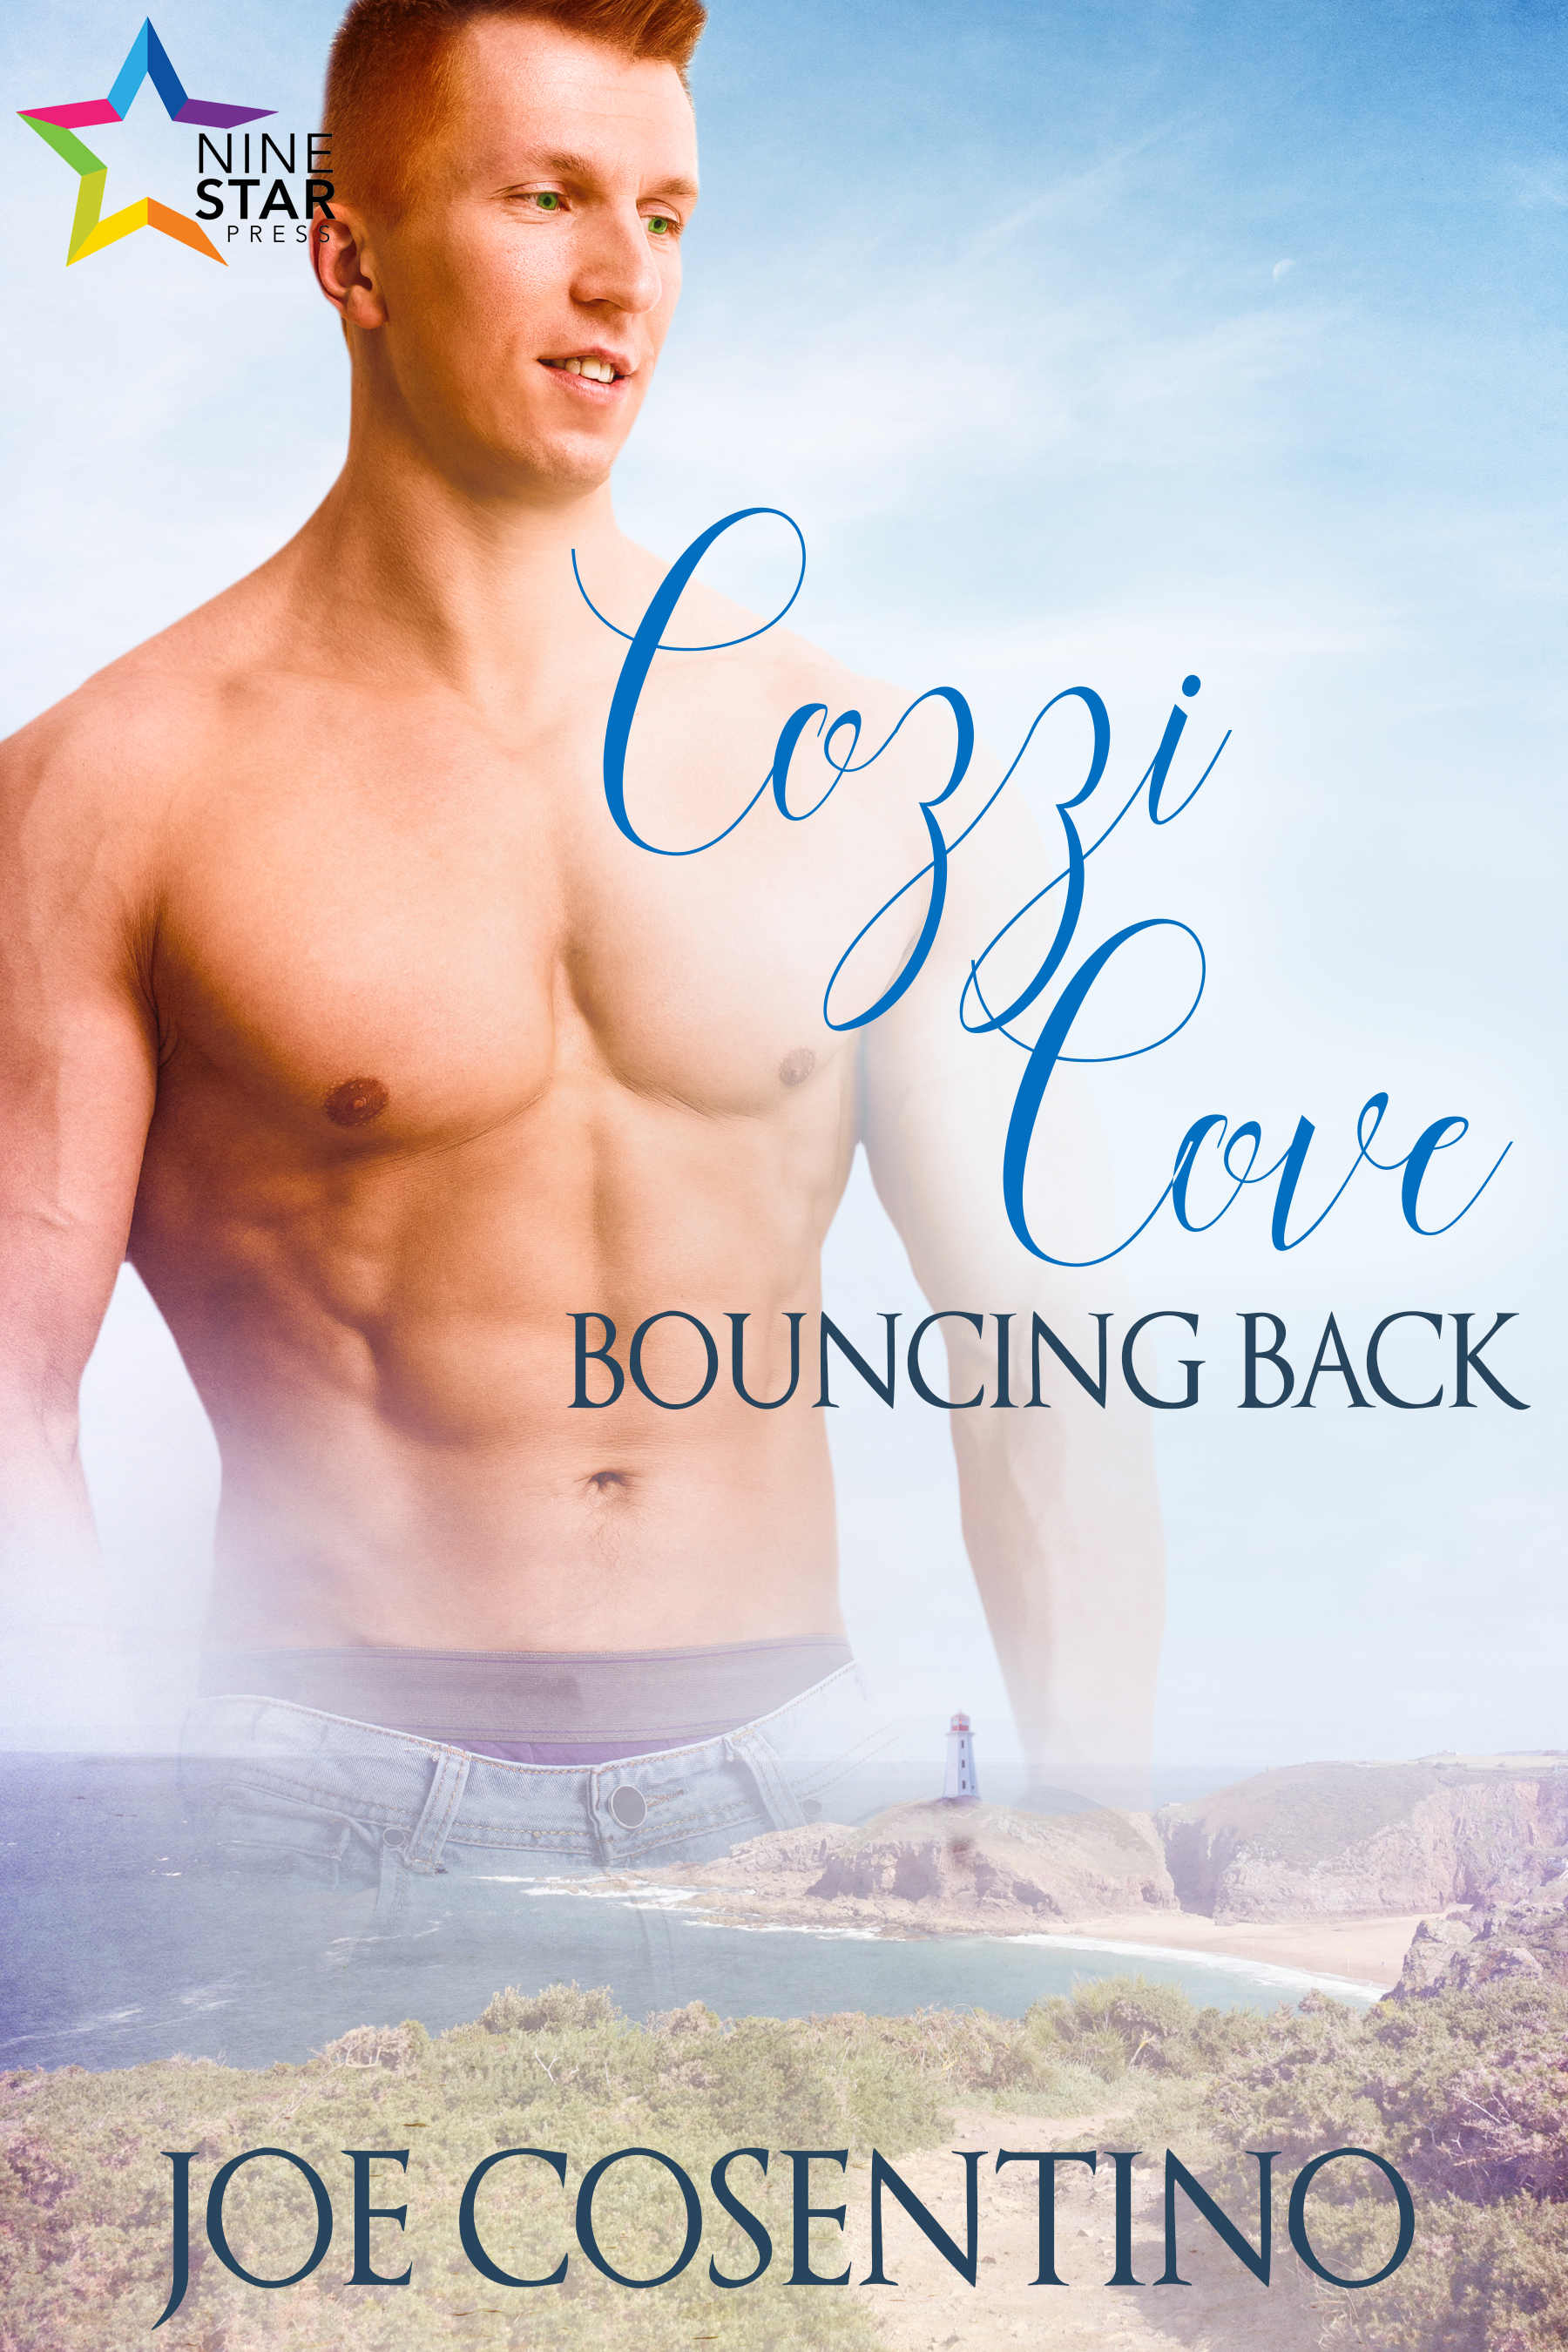 Guest Post and Giveaway: Cozzi Cove: Bouncing Back by Joe Cosentino